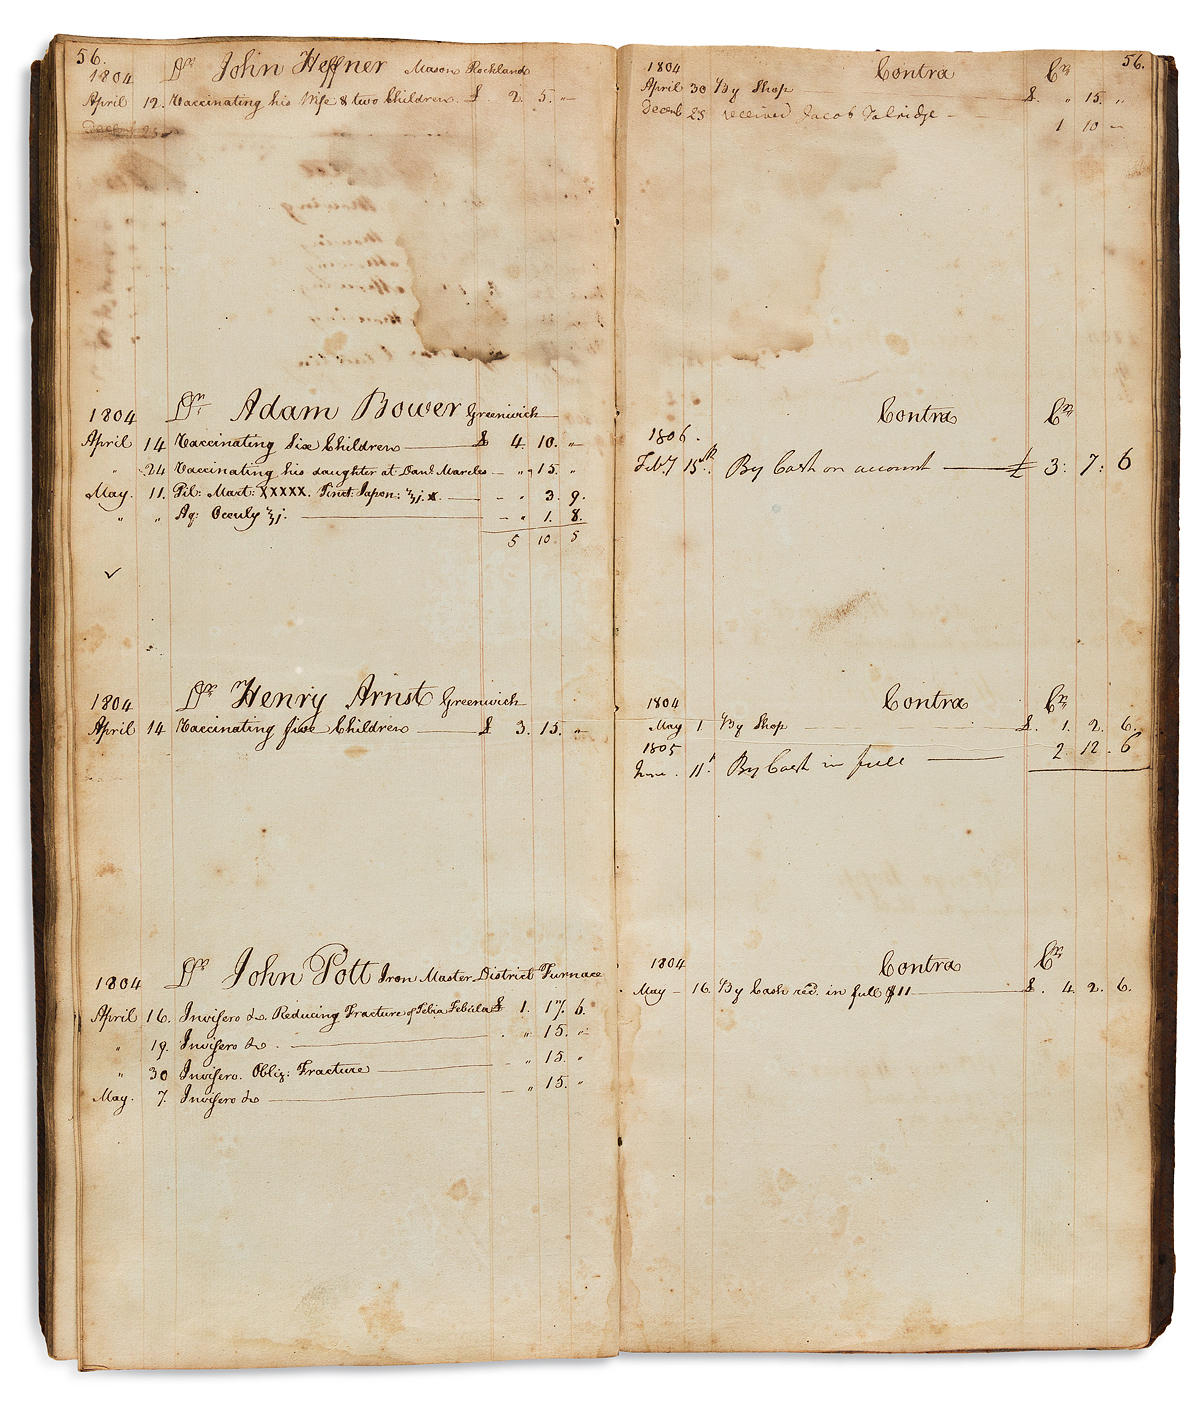 Medical Manuscript on Paper. Ledger of an early Pennsylvania physician specializing in vaccination.